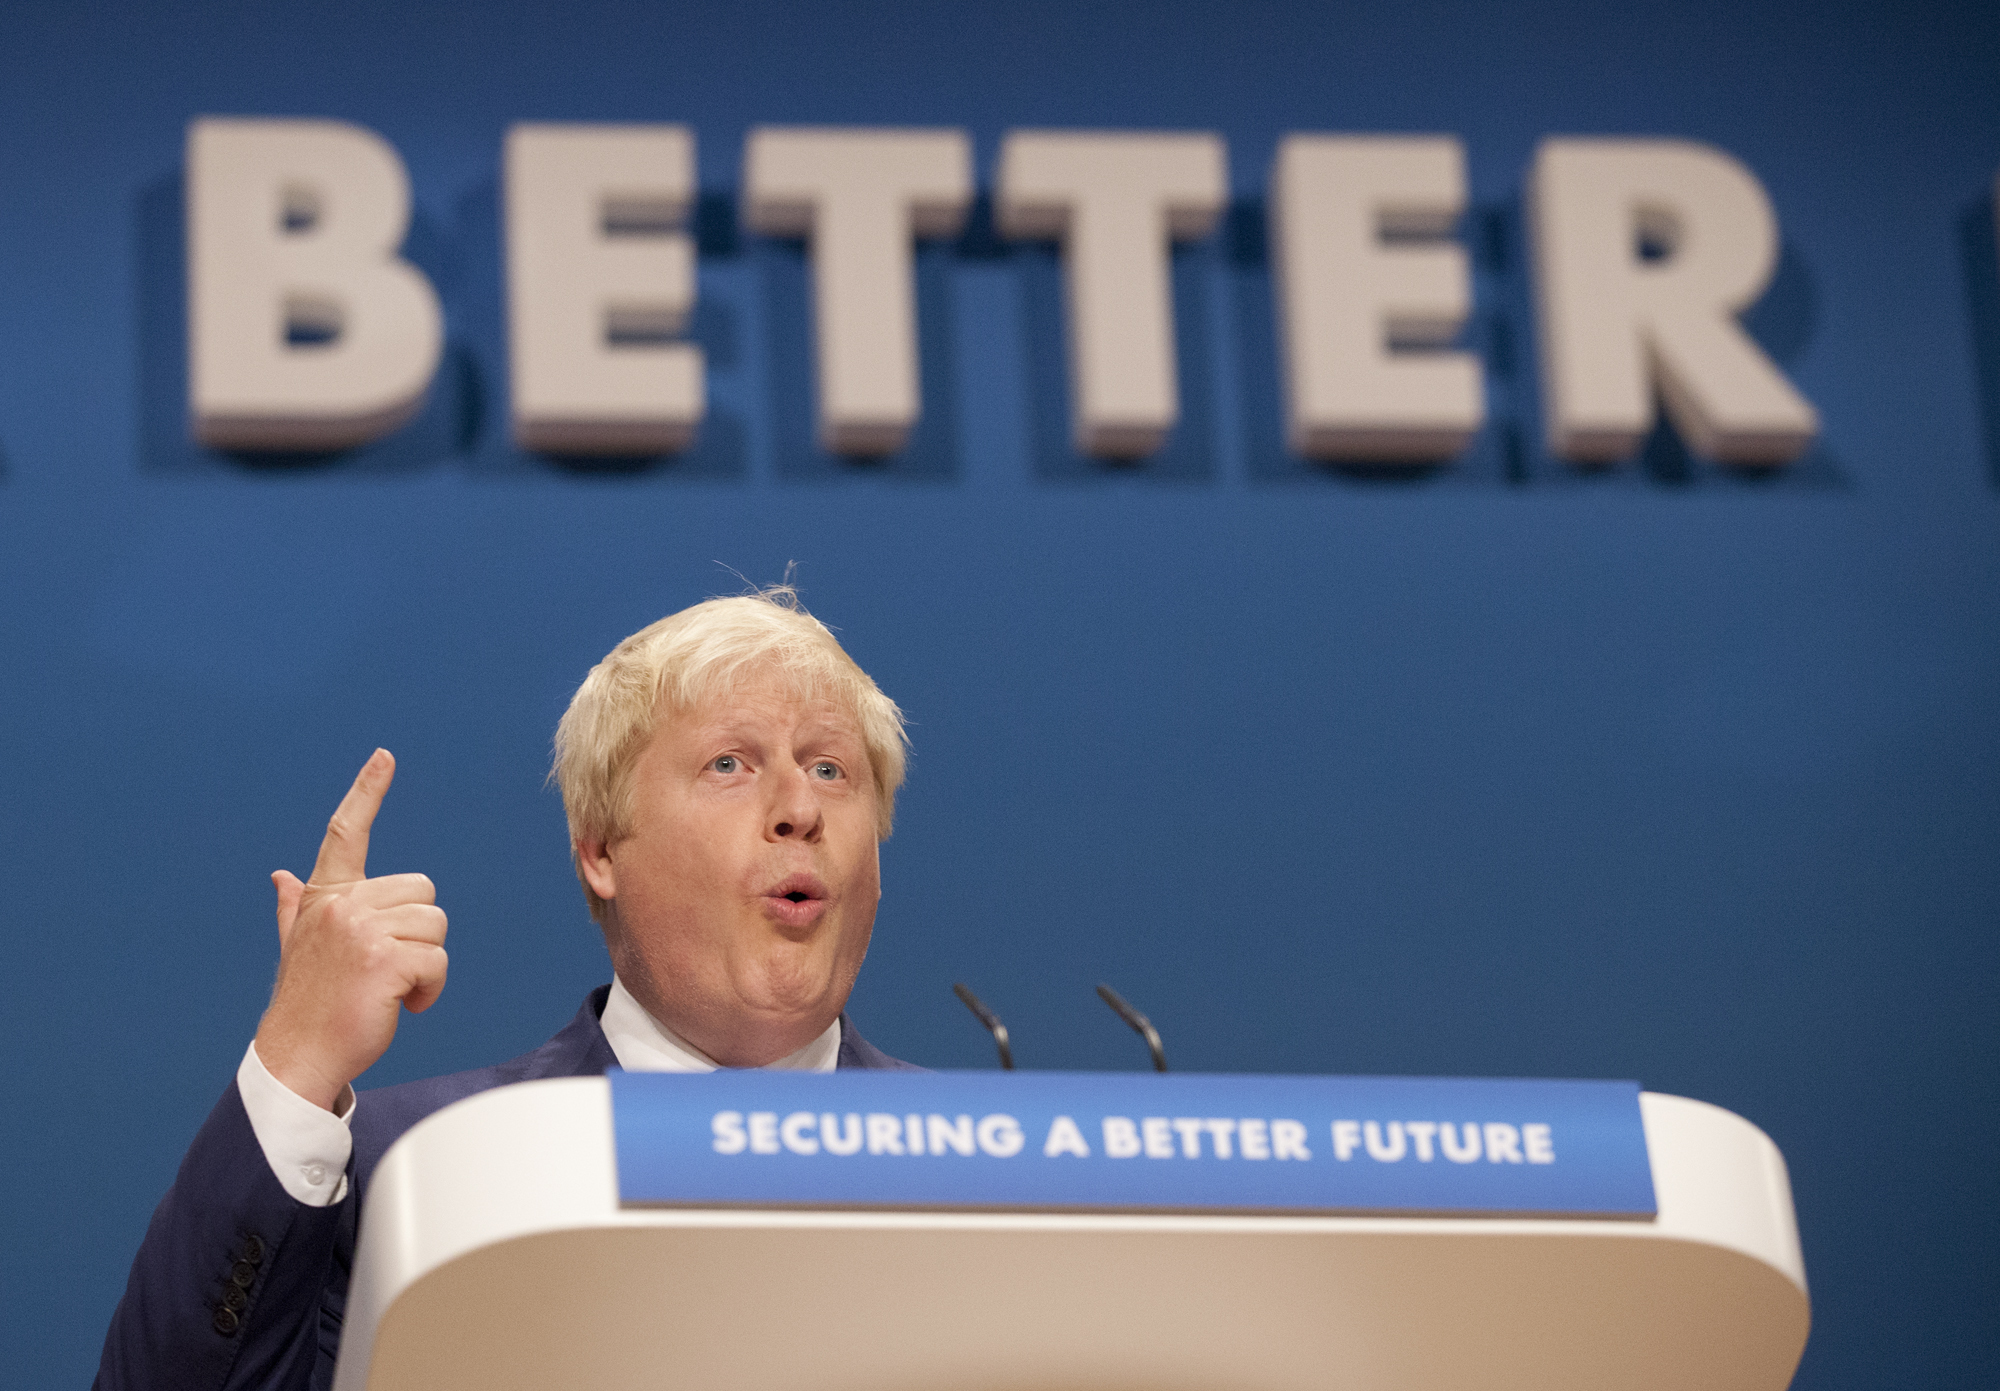 The Mayor of London Boris Johnson during the Conservative Party Conference 2014, at The ICC Birmingham.